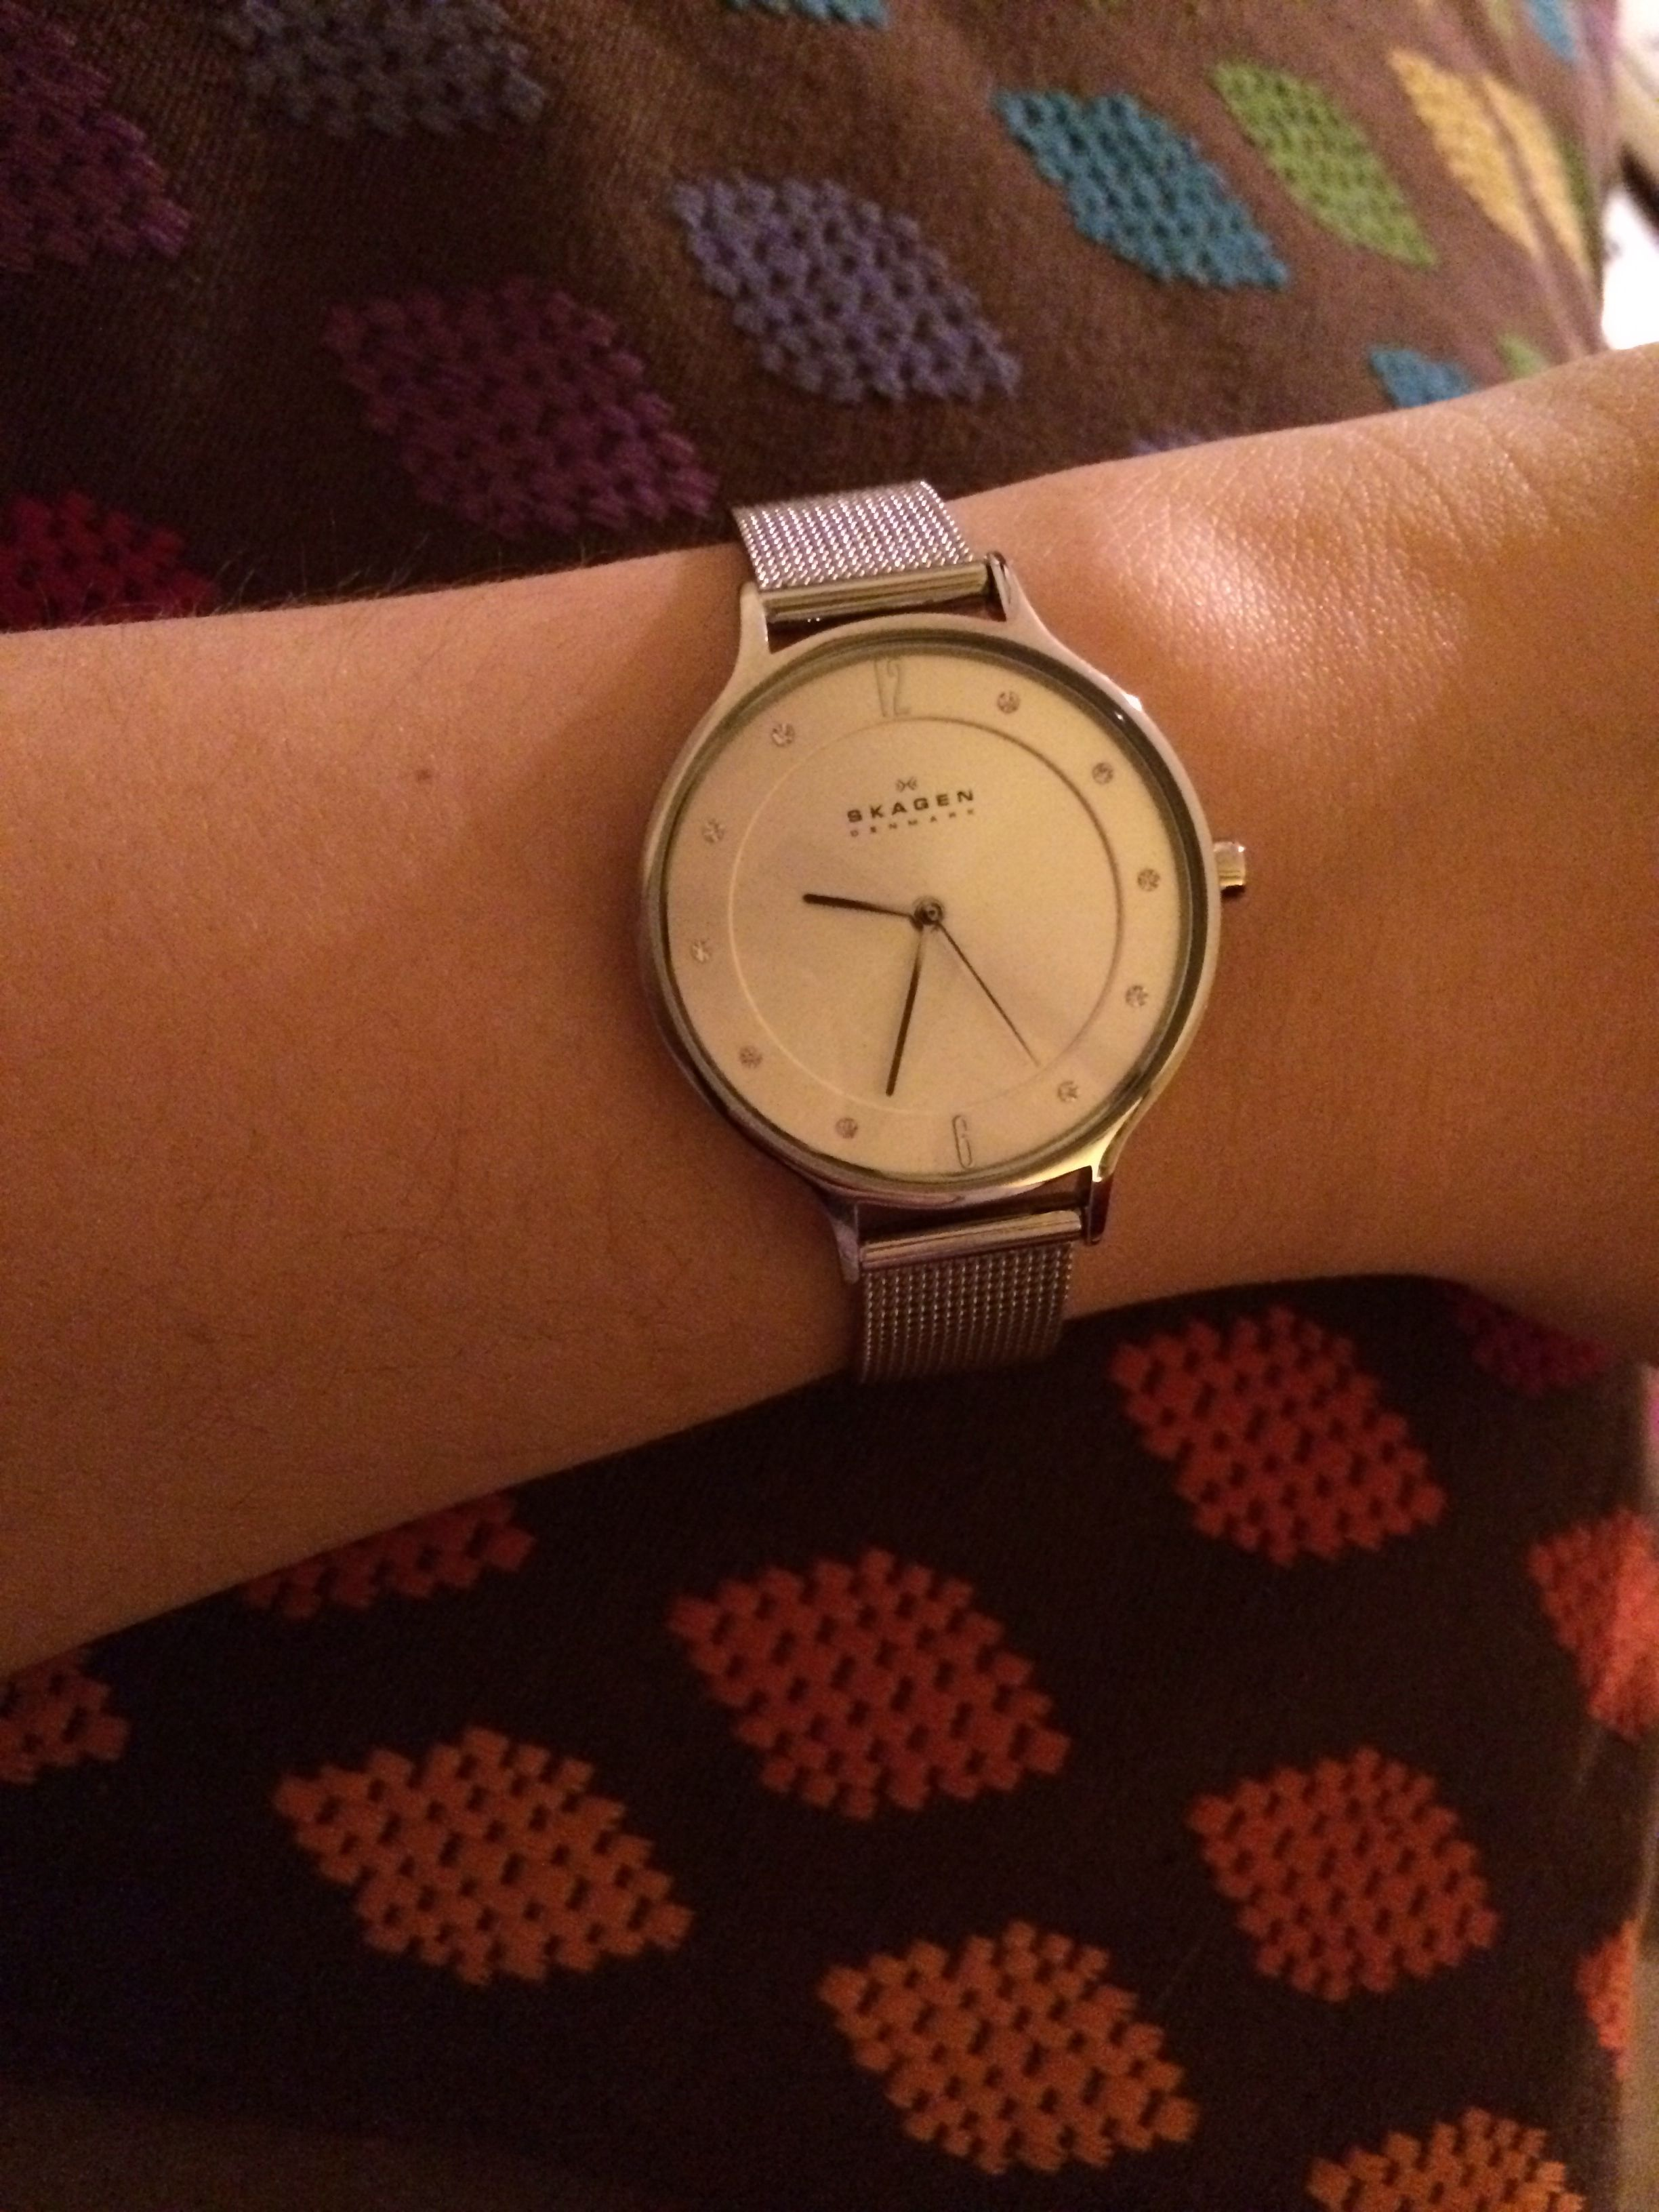 Obsessed with my new Skagen watch!